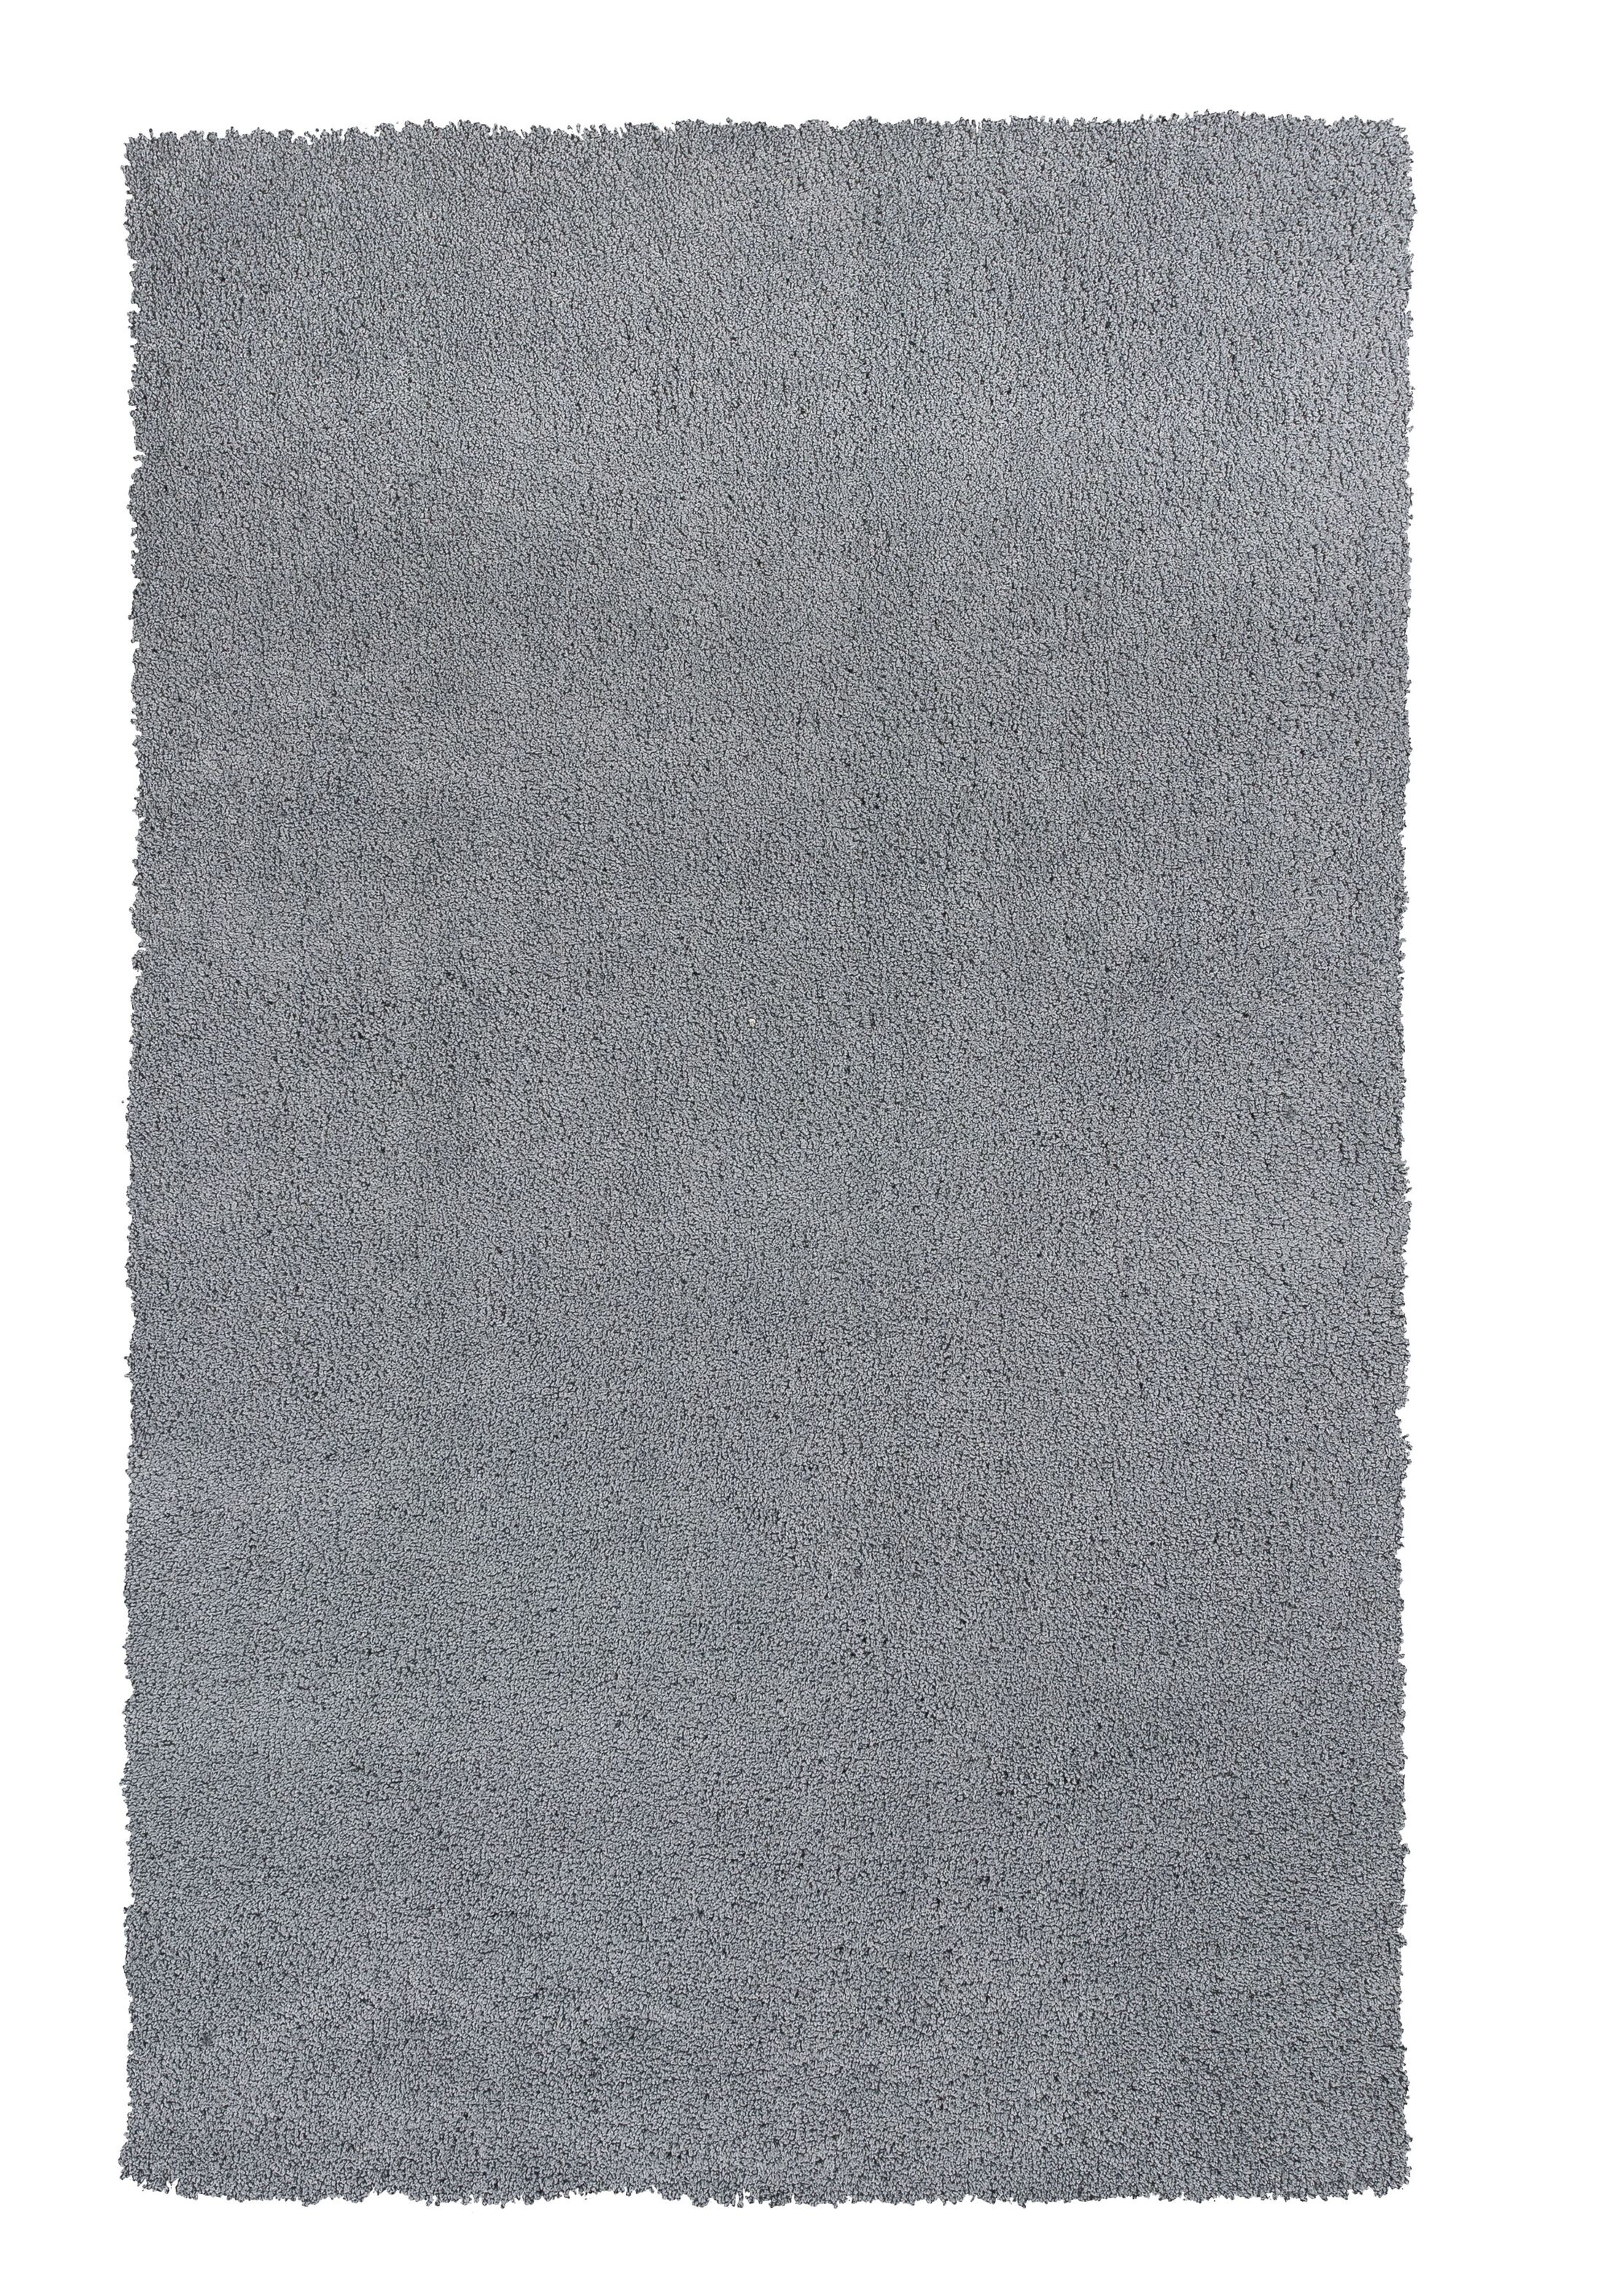 Bouvier Gray Area Rug Rug Size: Rectangle 9' x 13'